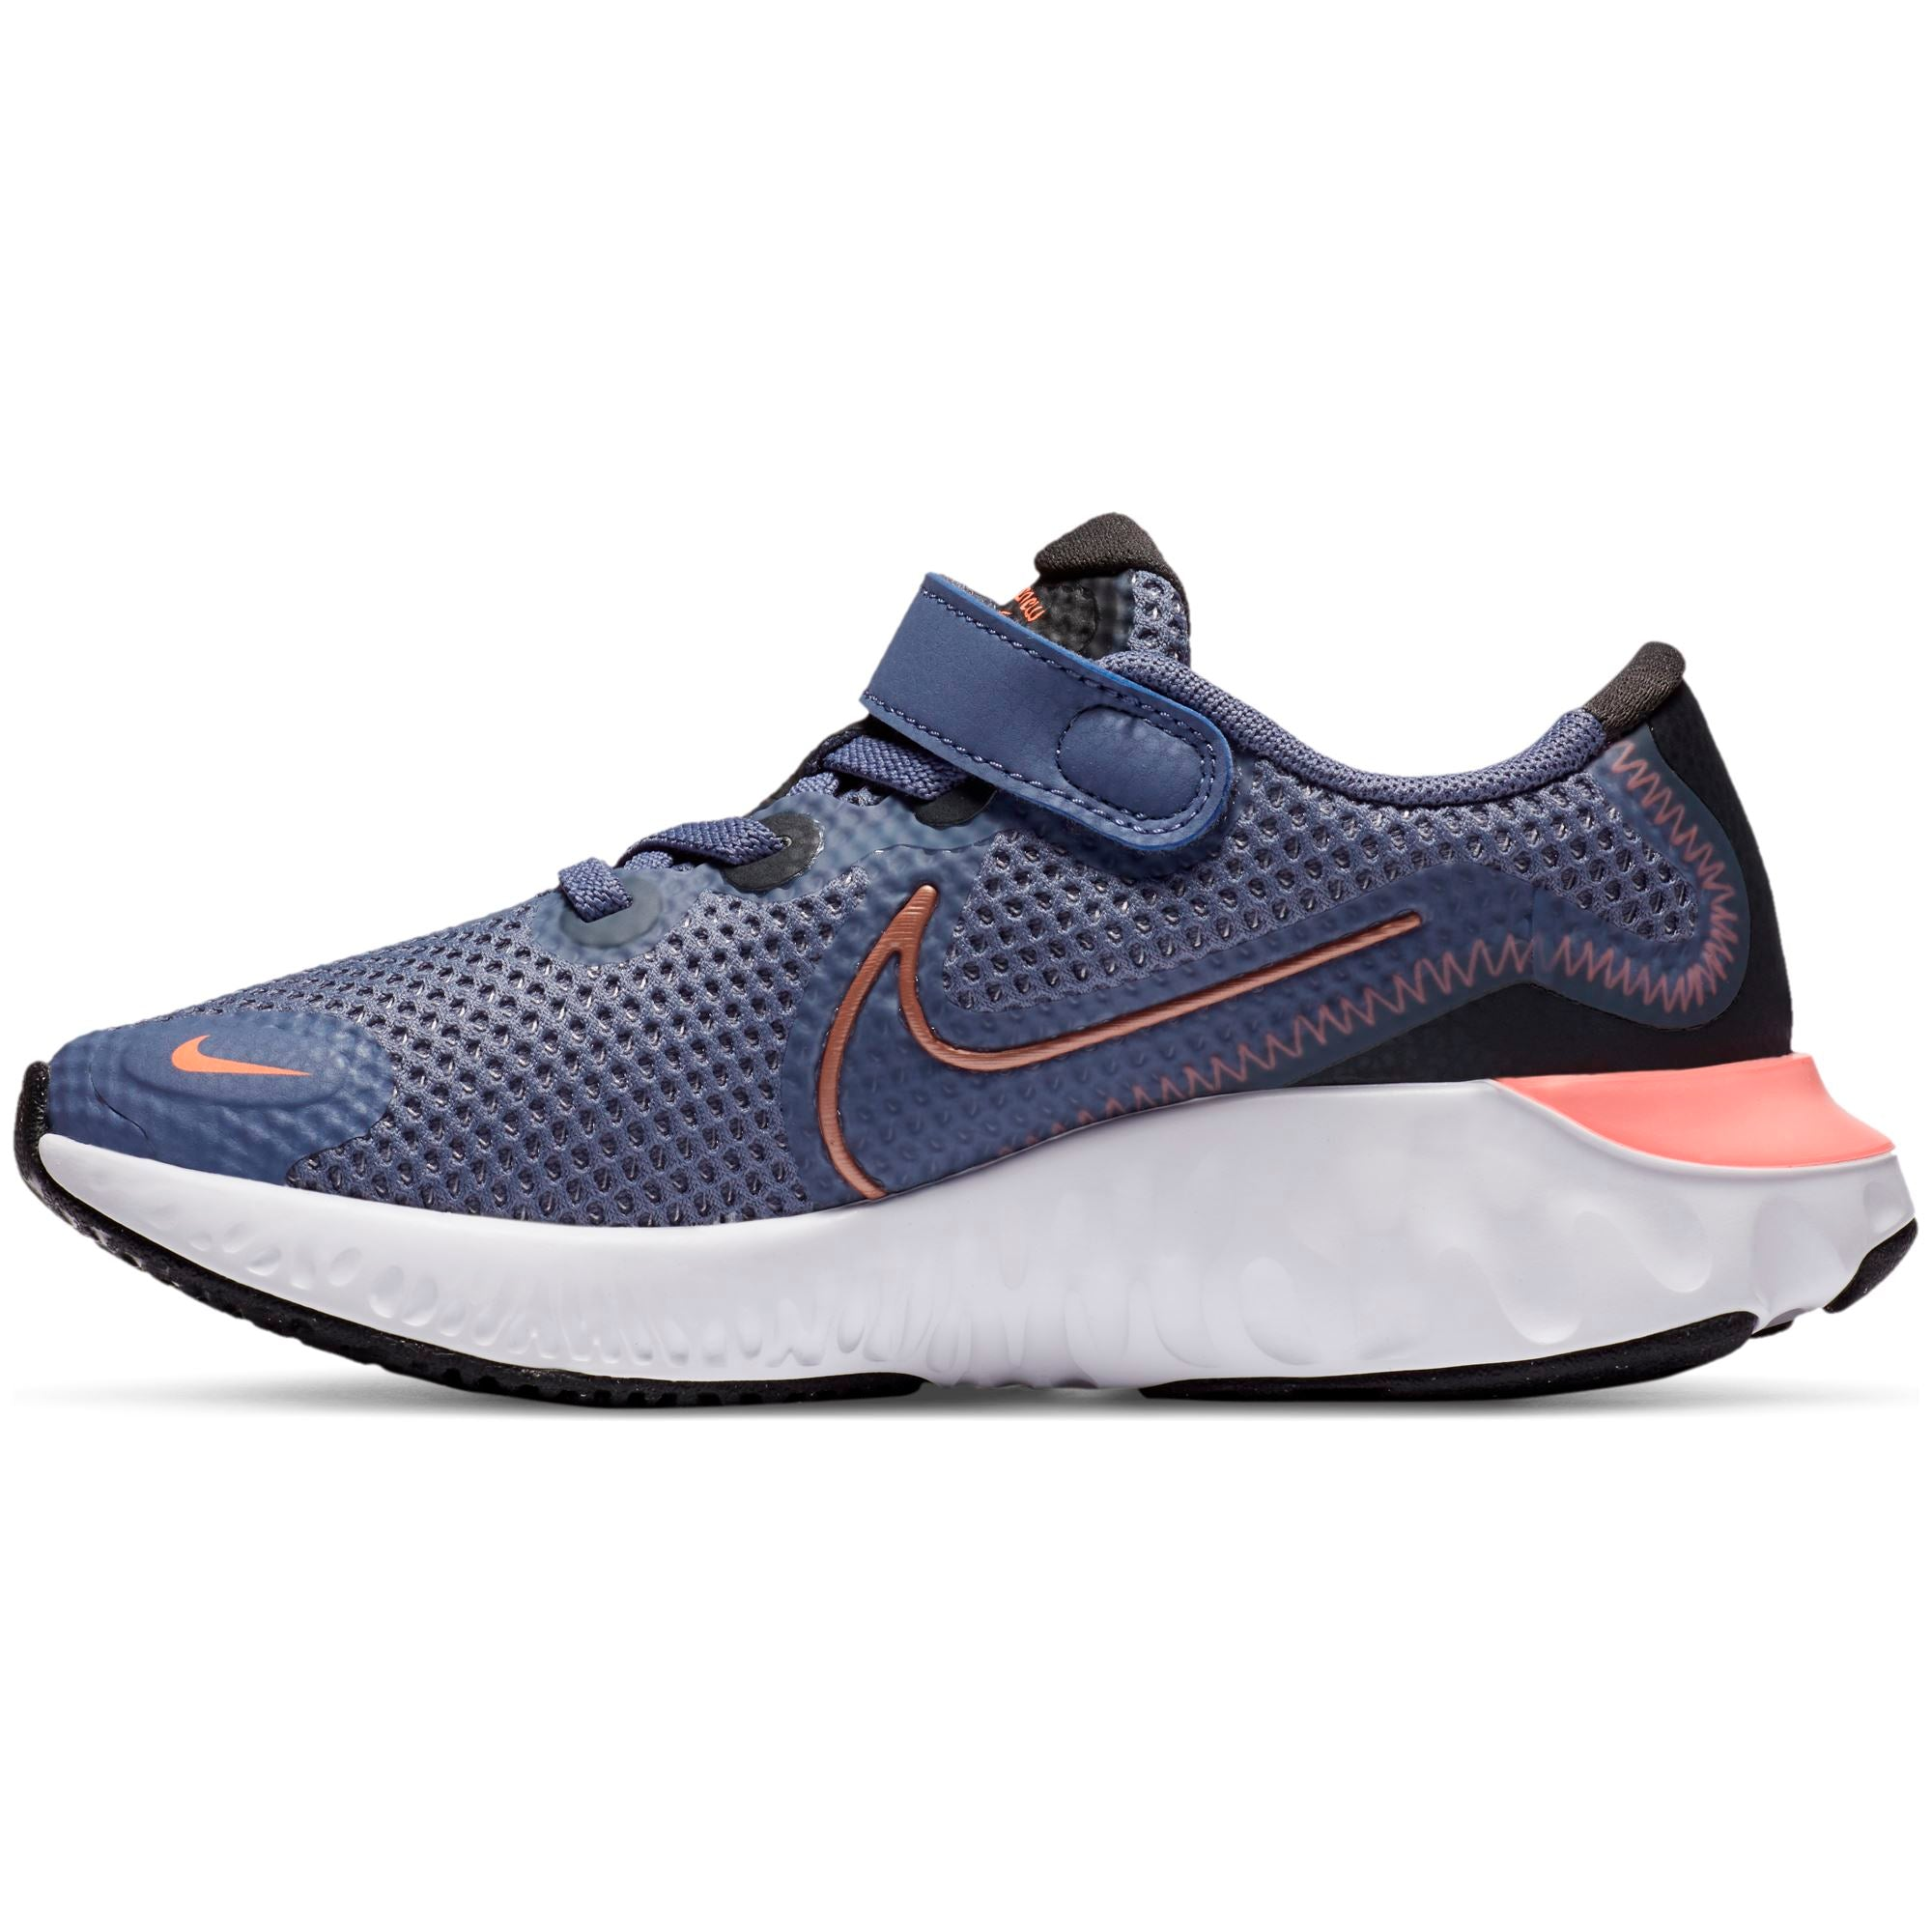 Nike Kids Renew Run - World Indigo/Mtlc Red Bronze/World Indigo/Mtlc Red Bronze SP-Footwear-Kids Nike